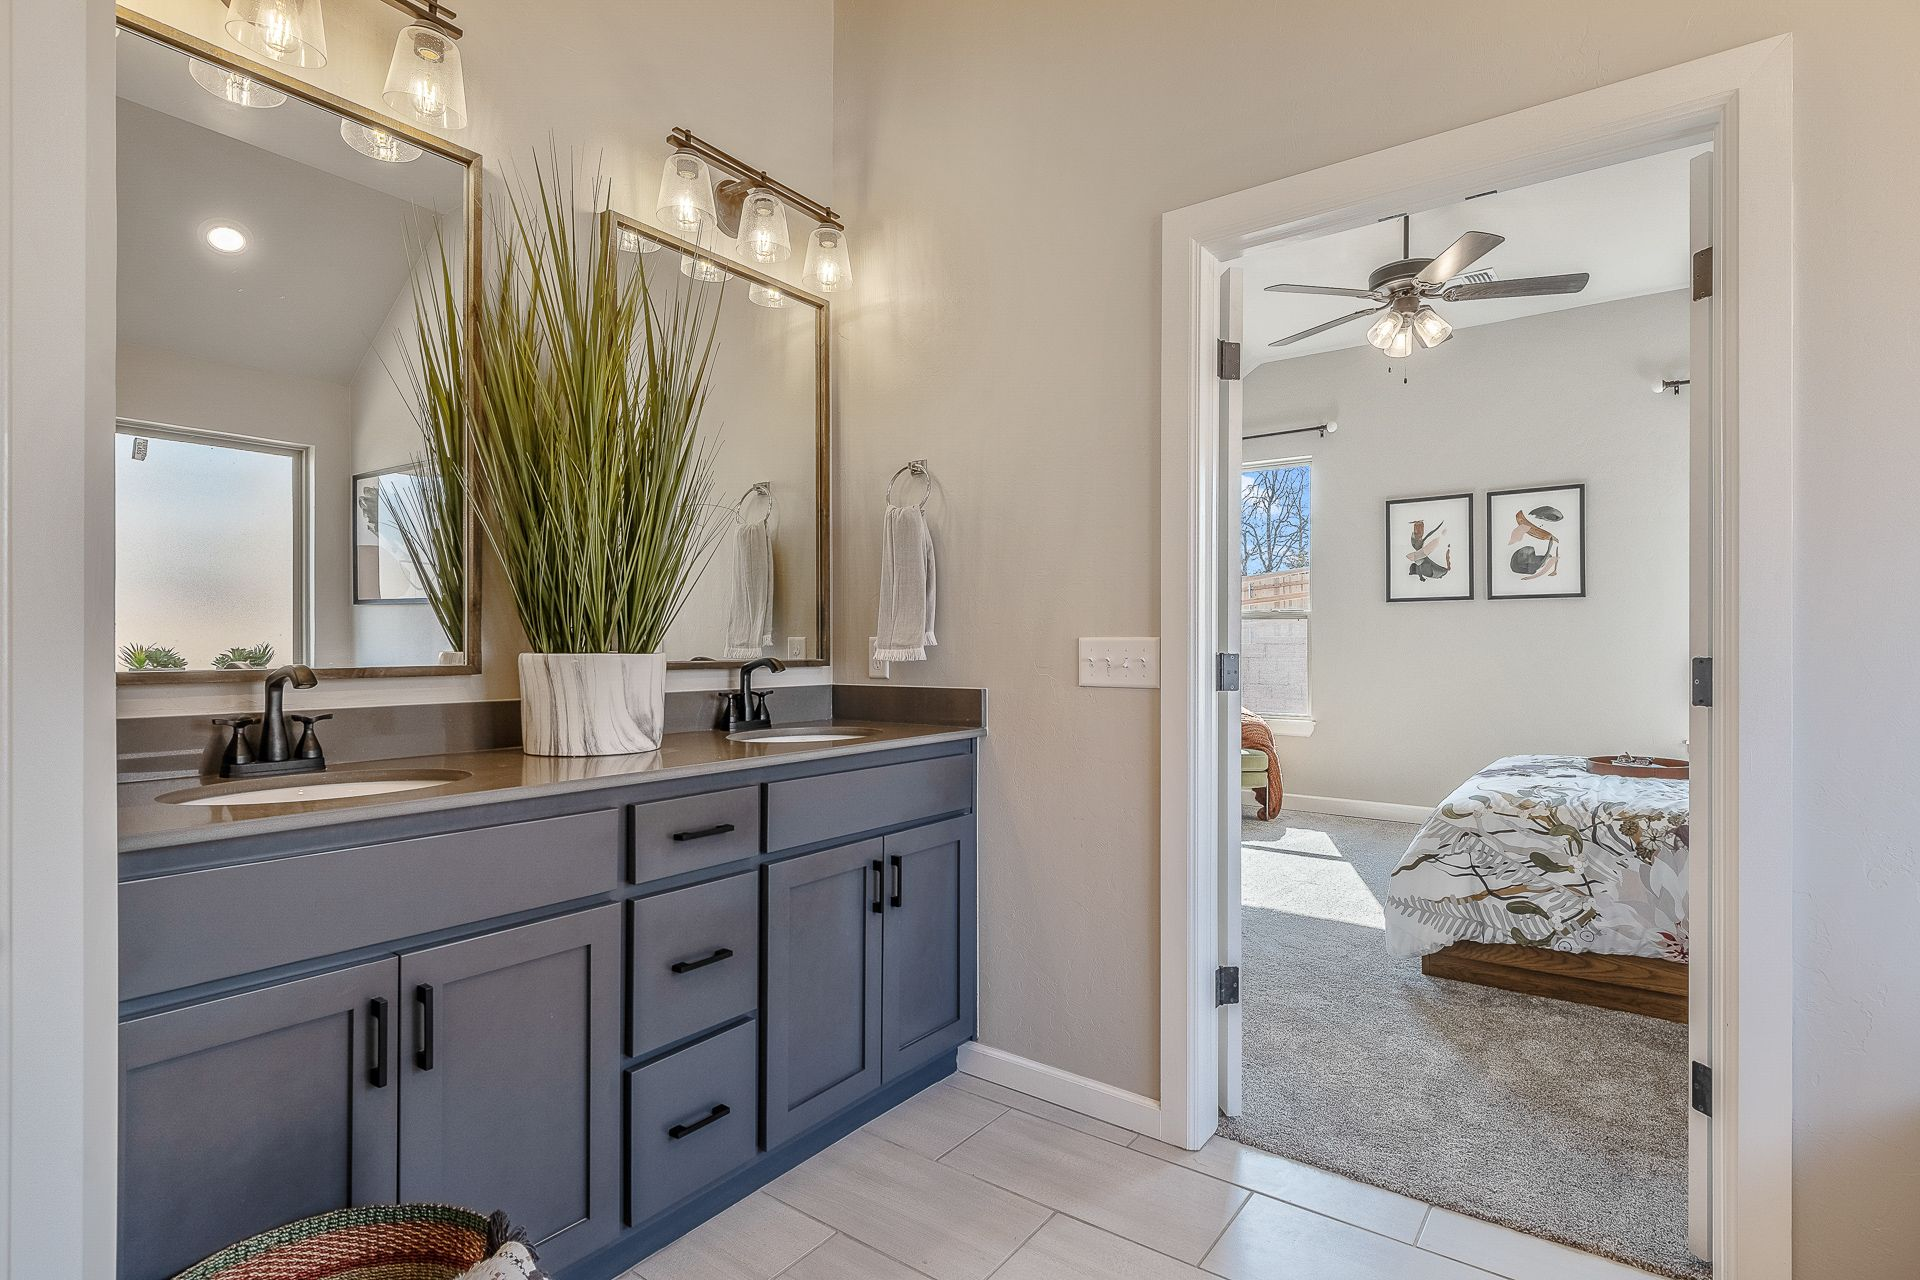 Bathroom featured in the Jacobson By Ideal Homes in Oklahoma City, OK